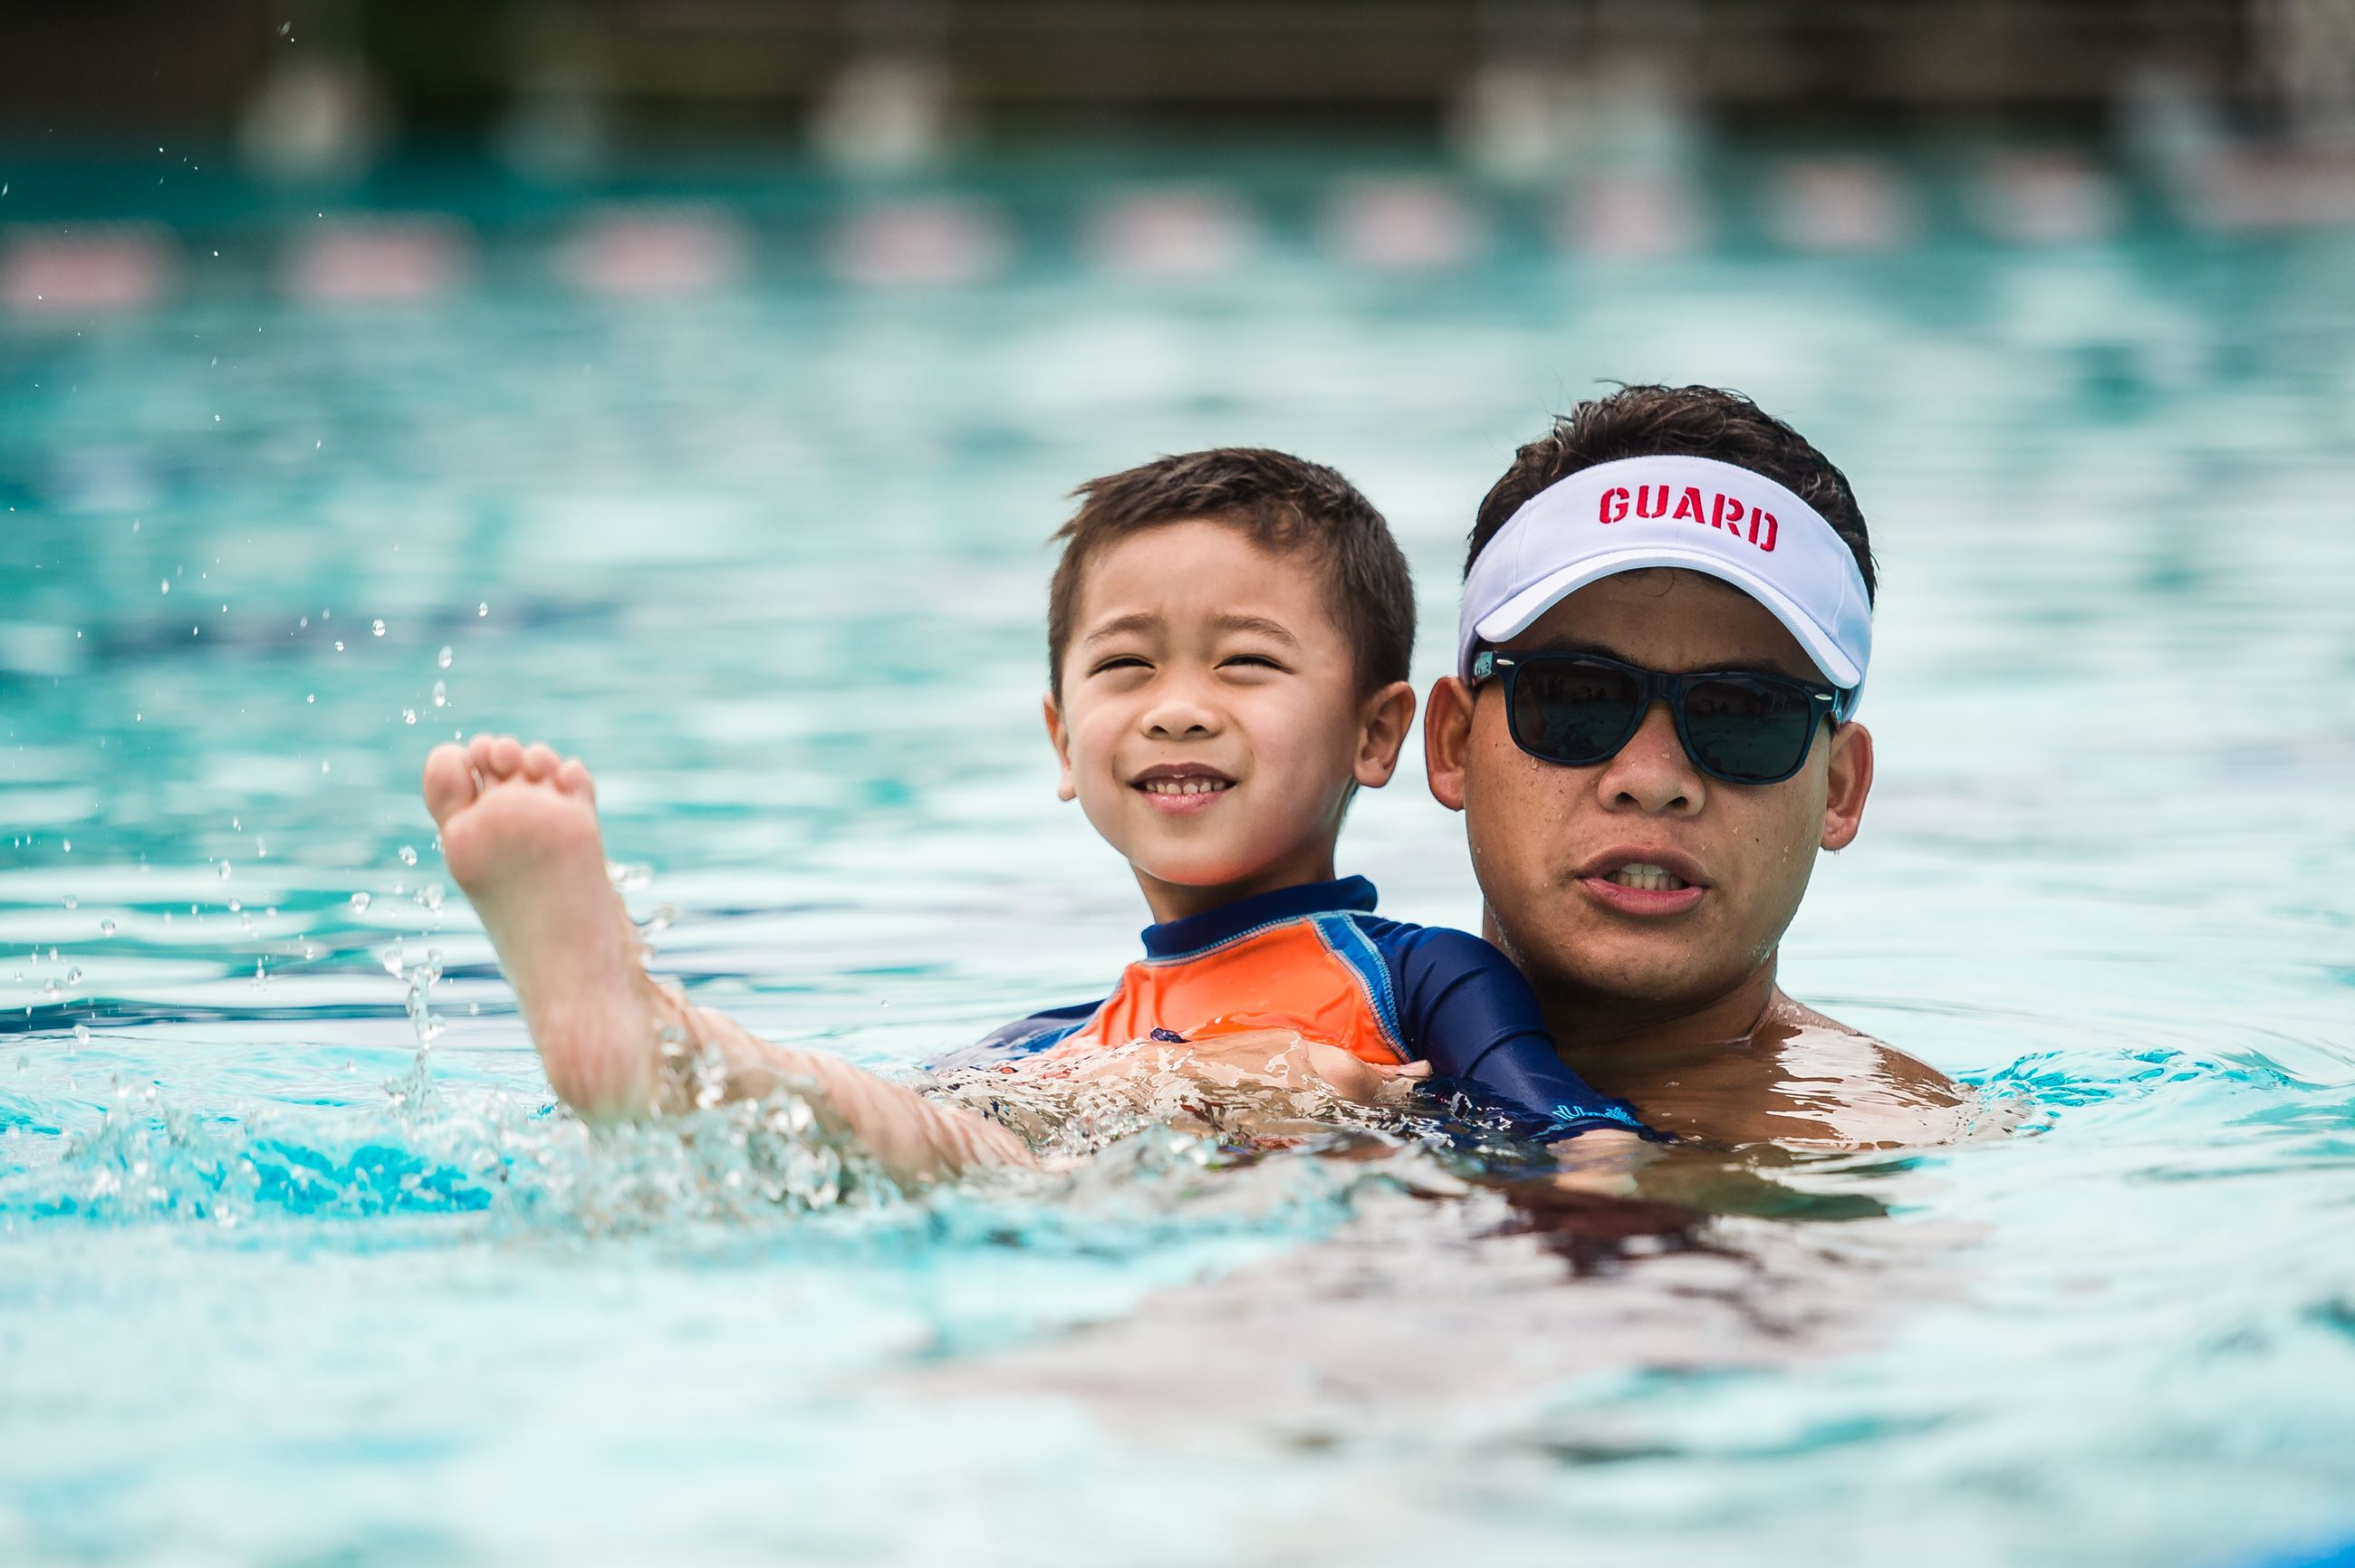 Lifeguard with child in swimming pool